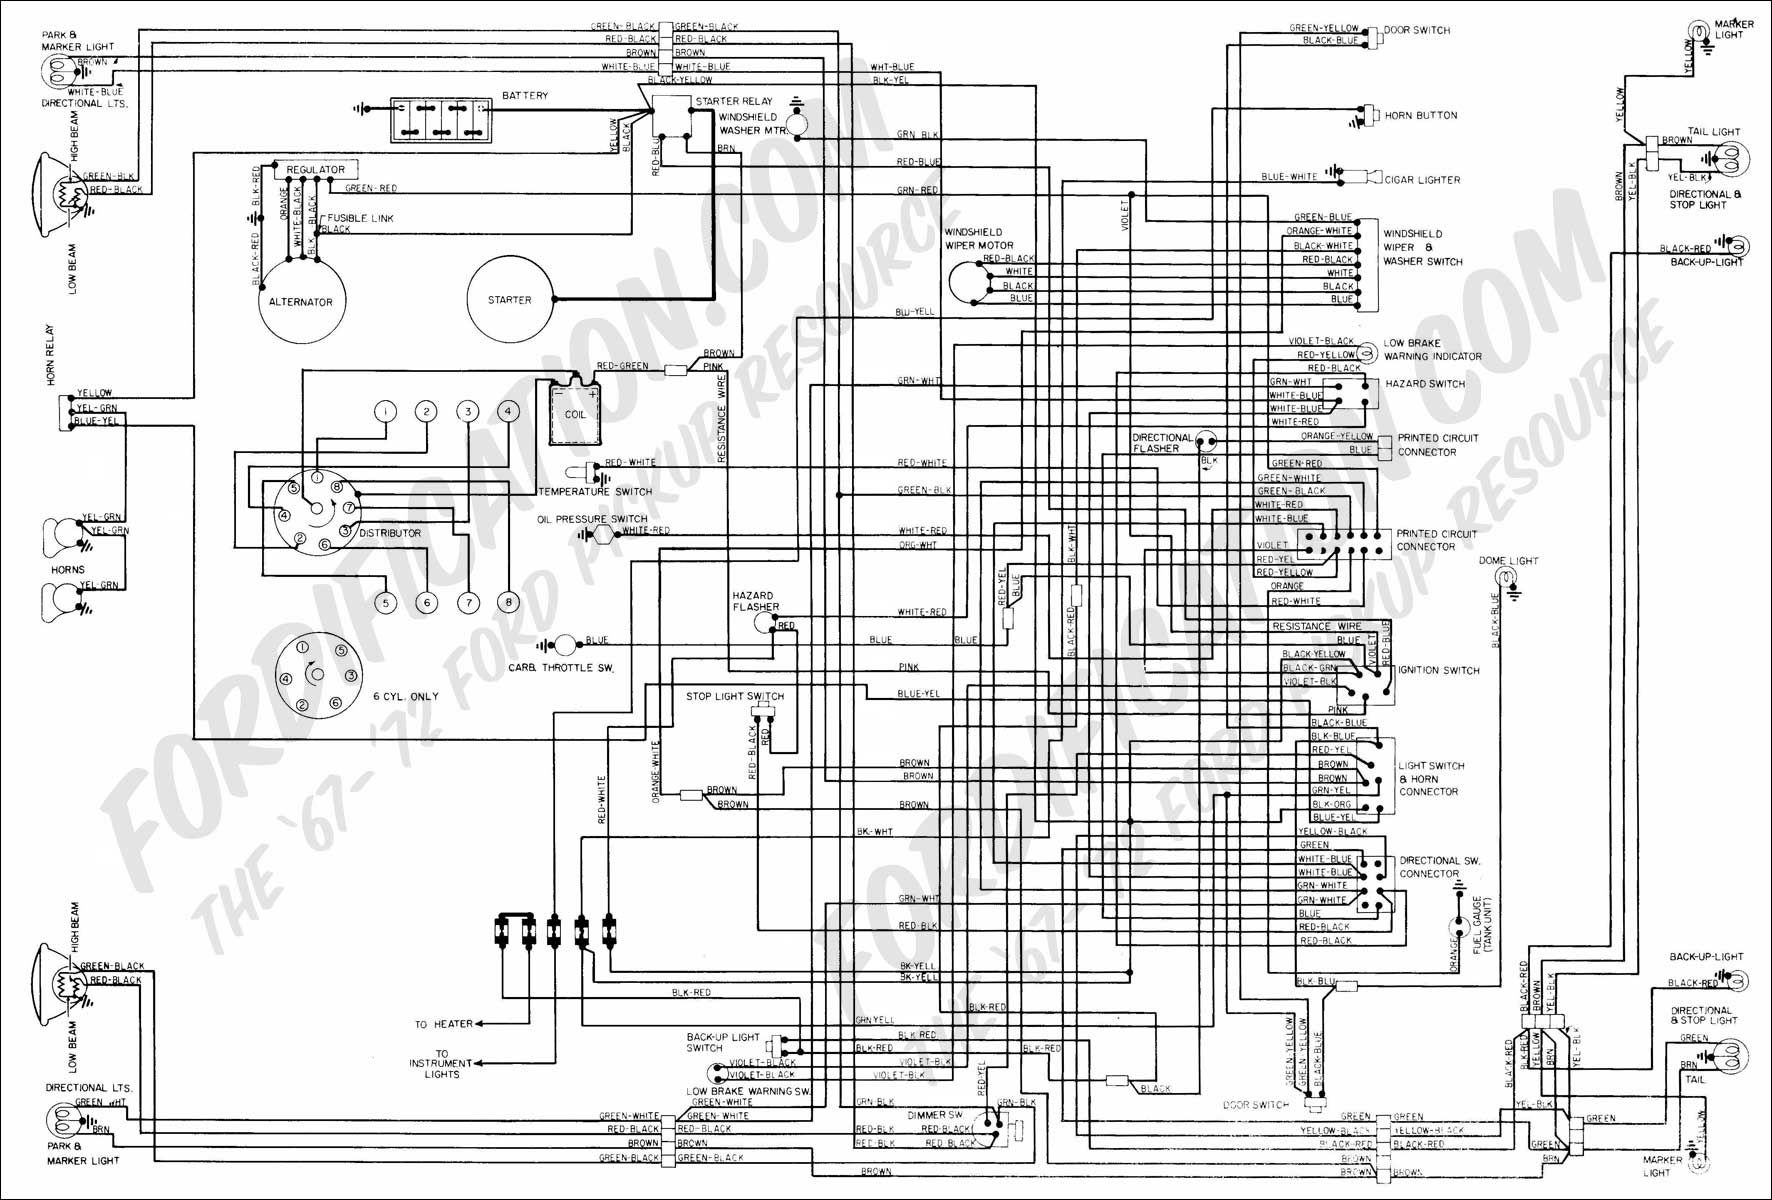 be873db495753211c2fc9a563f039b29 solenoid 1971 f250 1971 ford f100 wiring diagram www ford 1971 ford f250 wiring diagram at bayanpartner.co